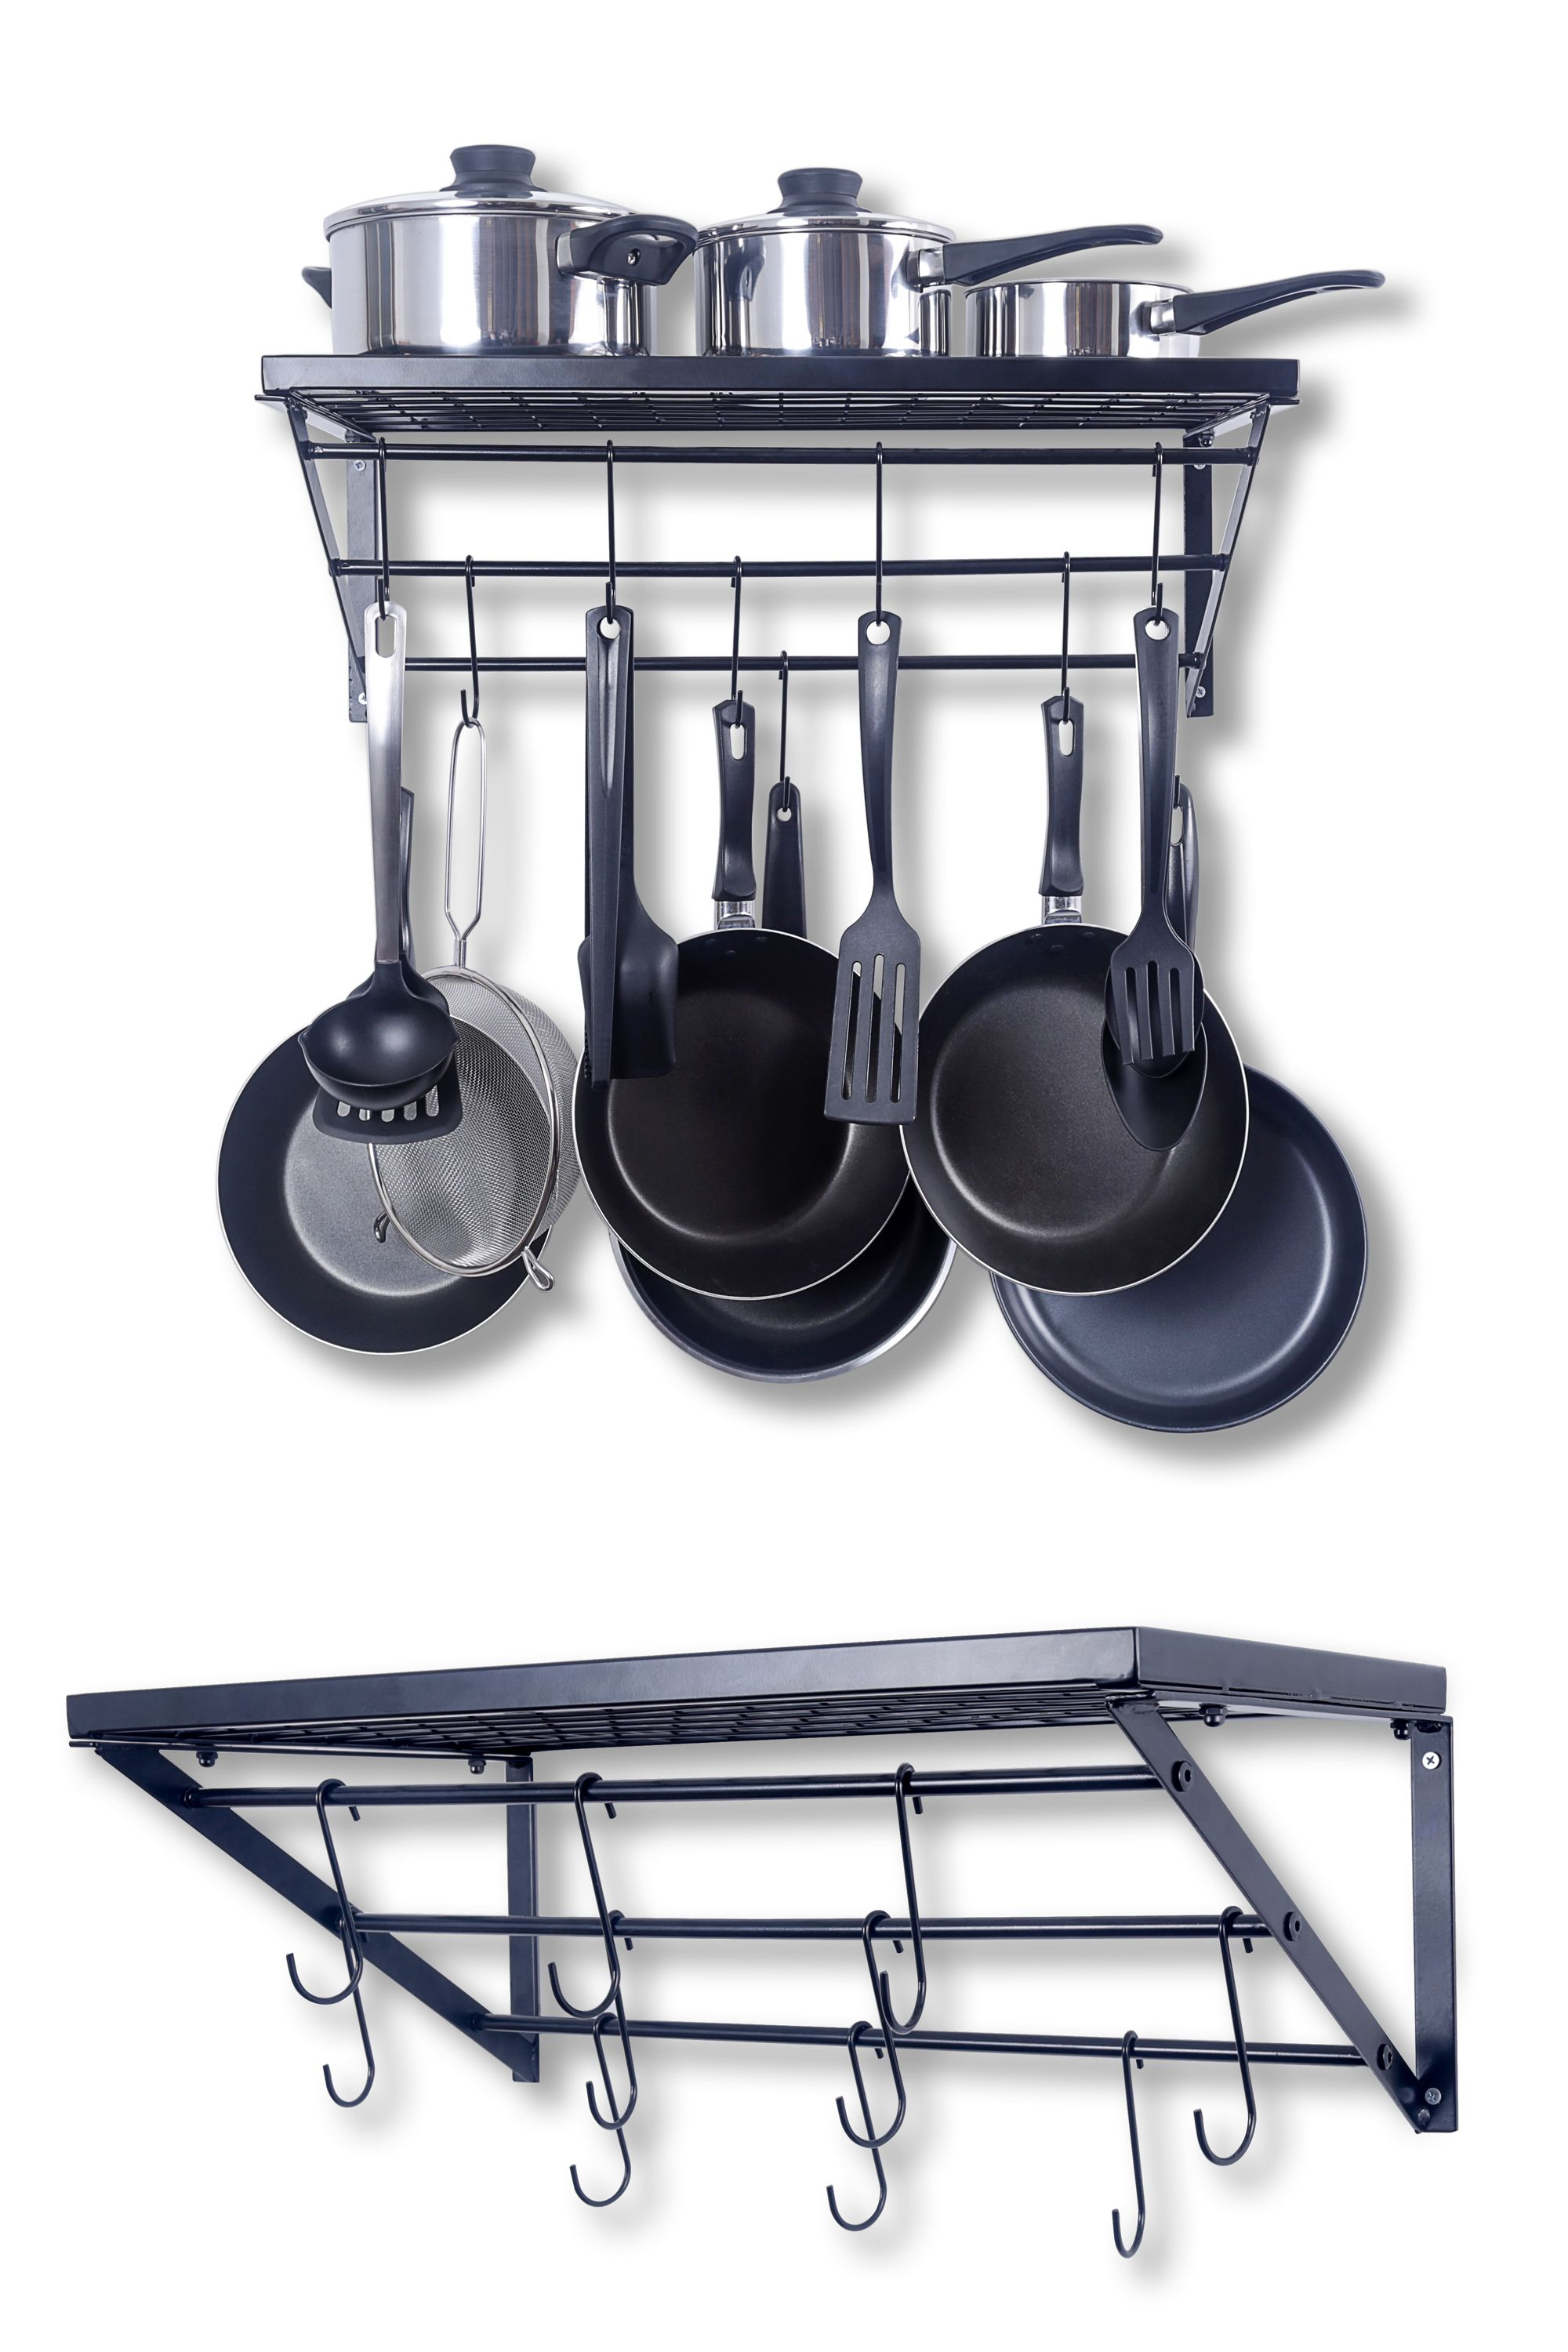 Kitchen Wall Pot Pan Rack with 10 Hooks Black